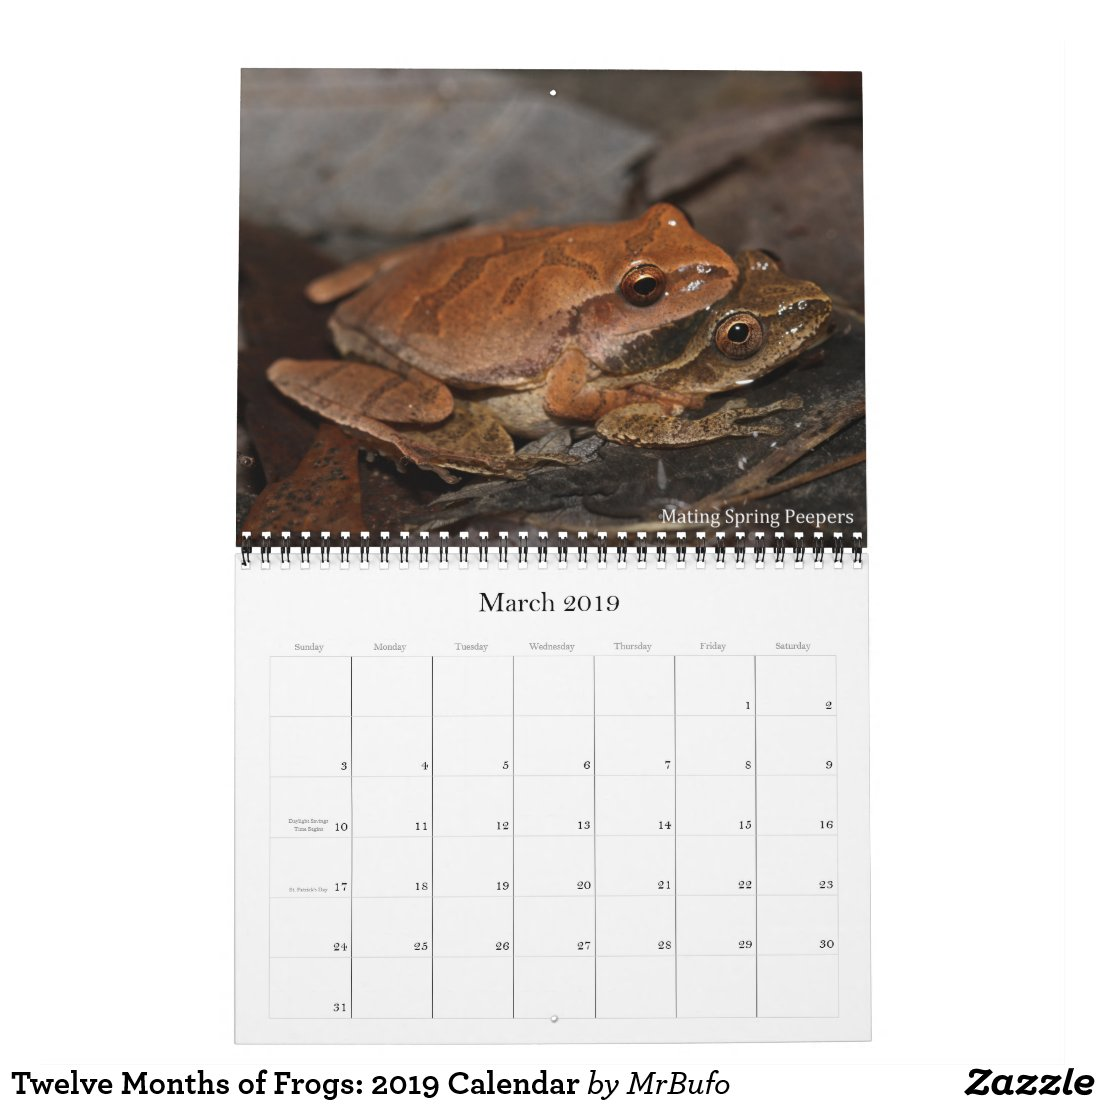 2019 Frog Photo Calendar for sale; Amplexing Spring Peepers